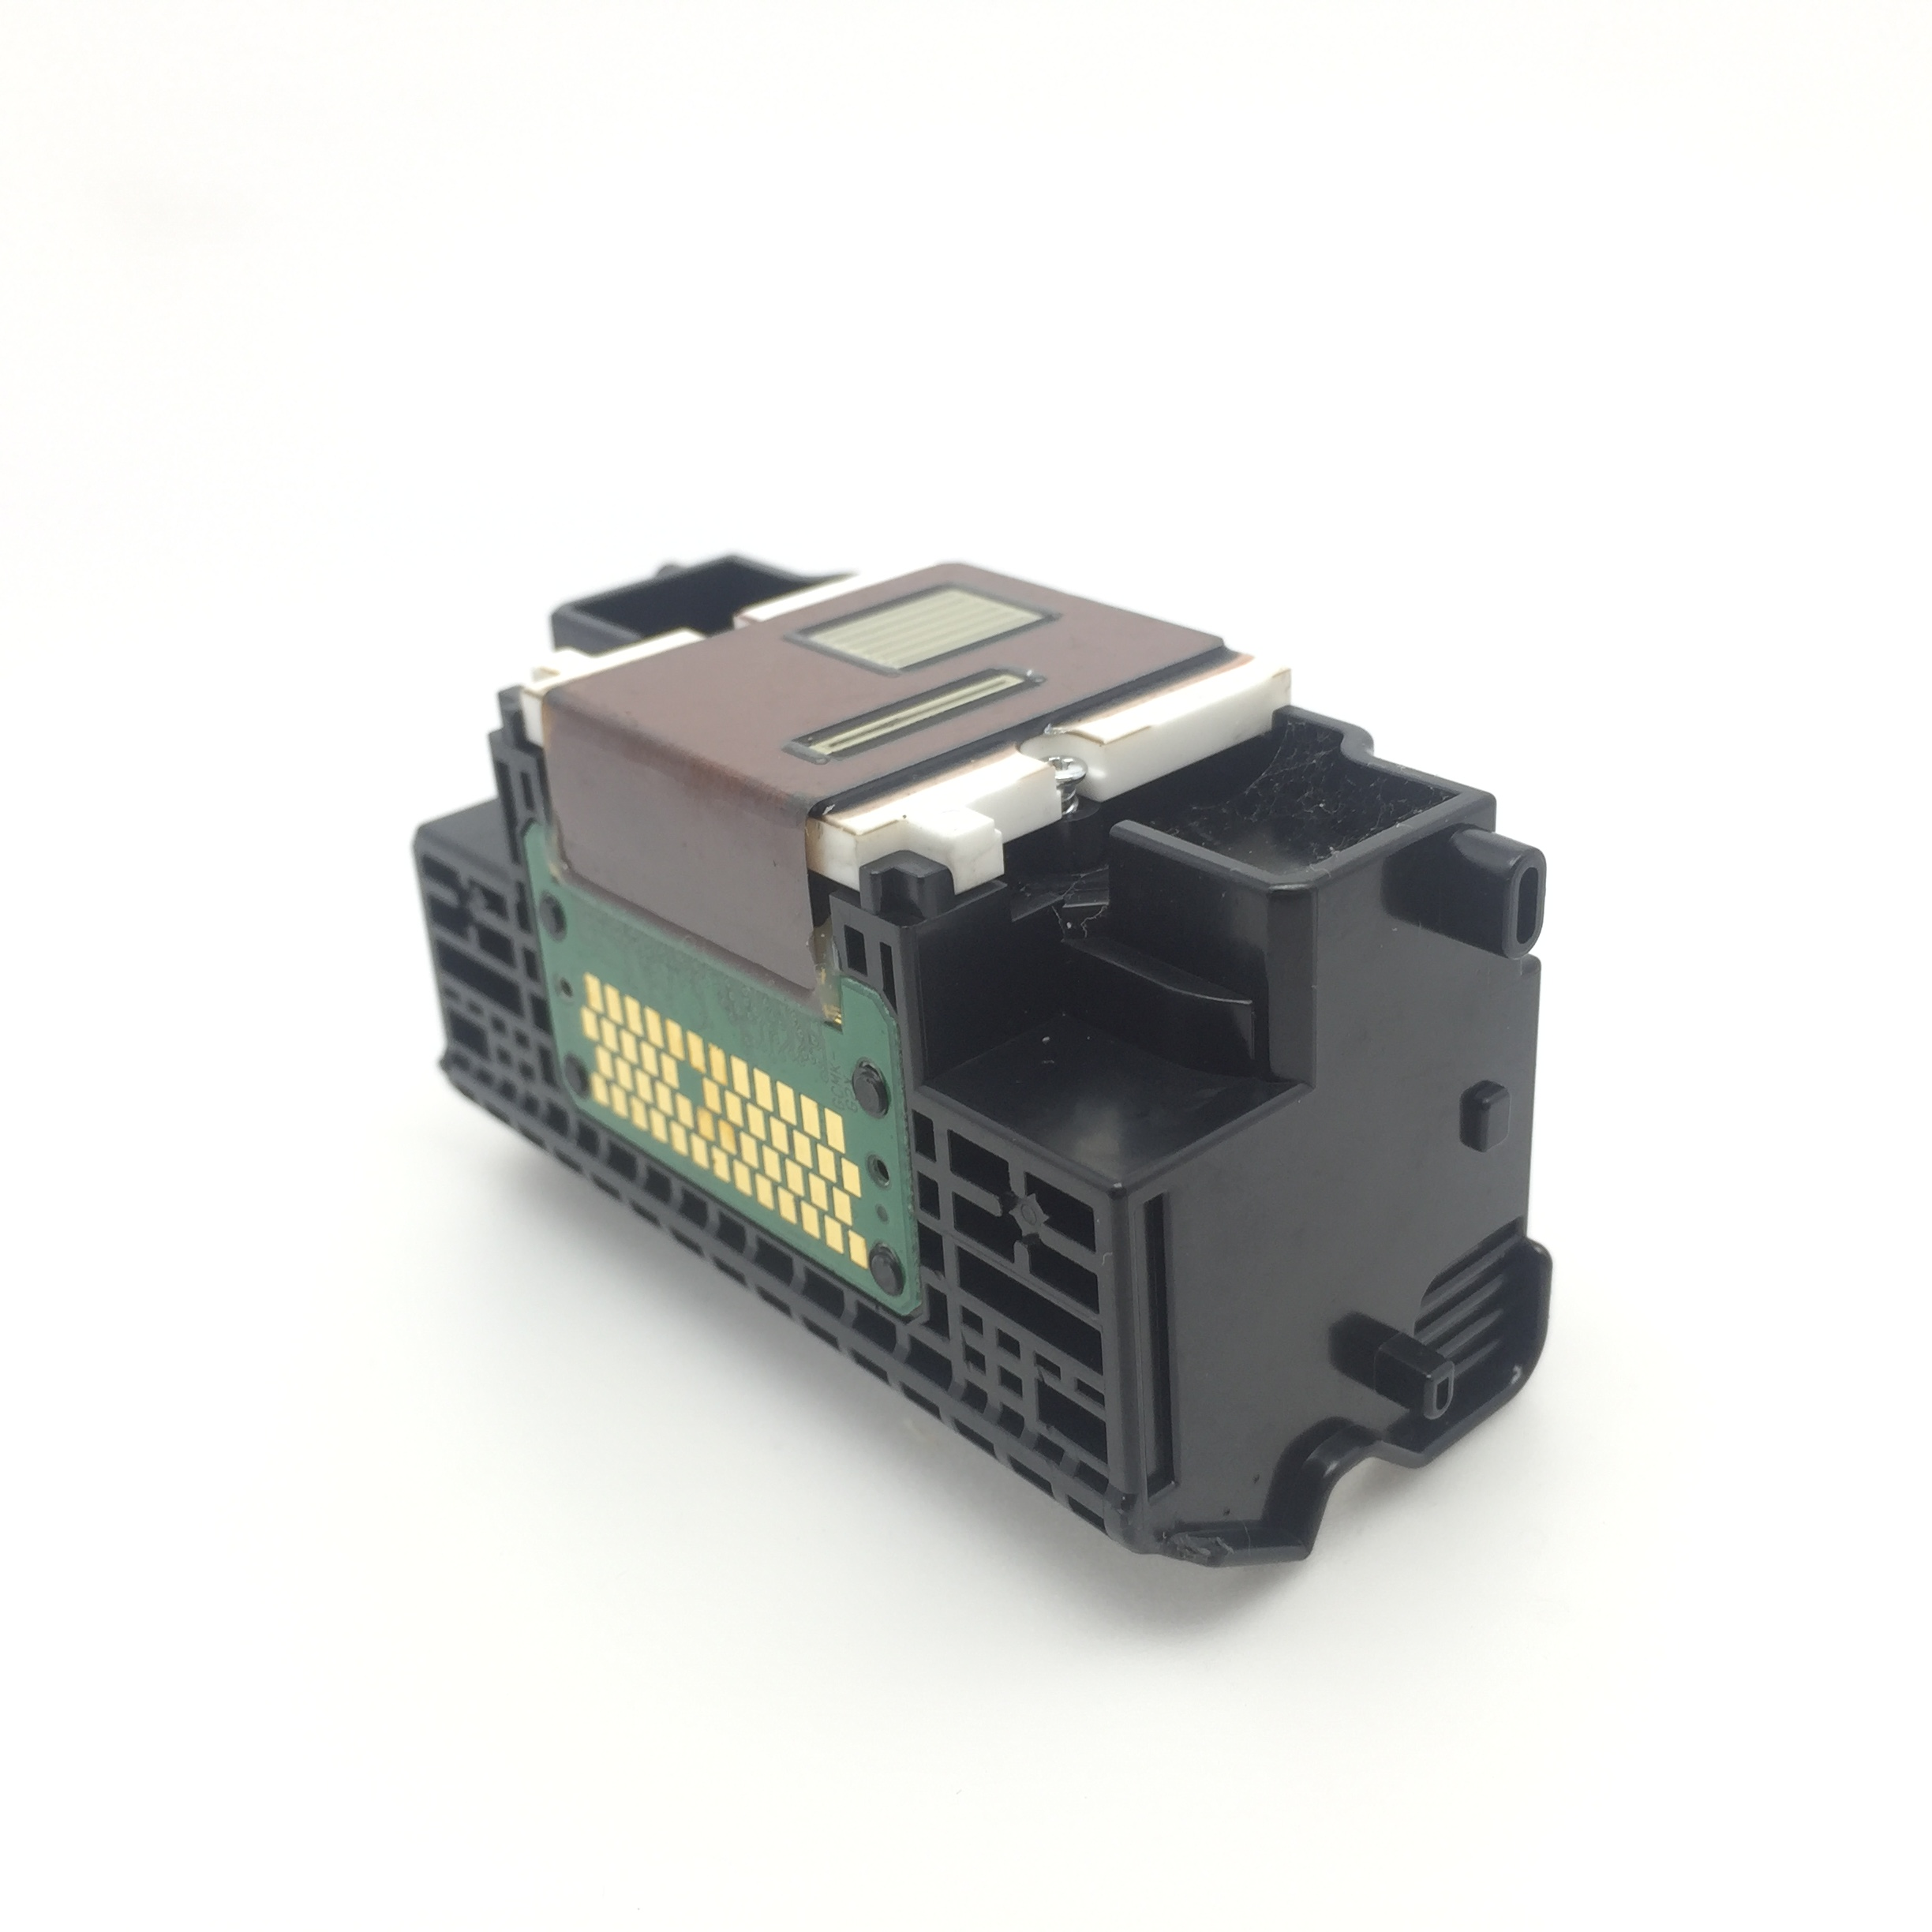 Printhead QY6-0072 Print head For Canon Printer IP4600 IP4700 MP630 MP640 SHIPPING FREE good quality qy6 0072 original and refurbished printhead for canon ip4600 ip4700 mp630 mp640 printer accessory